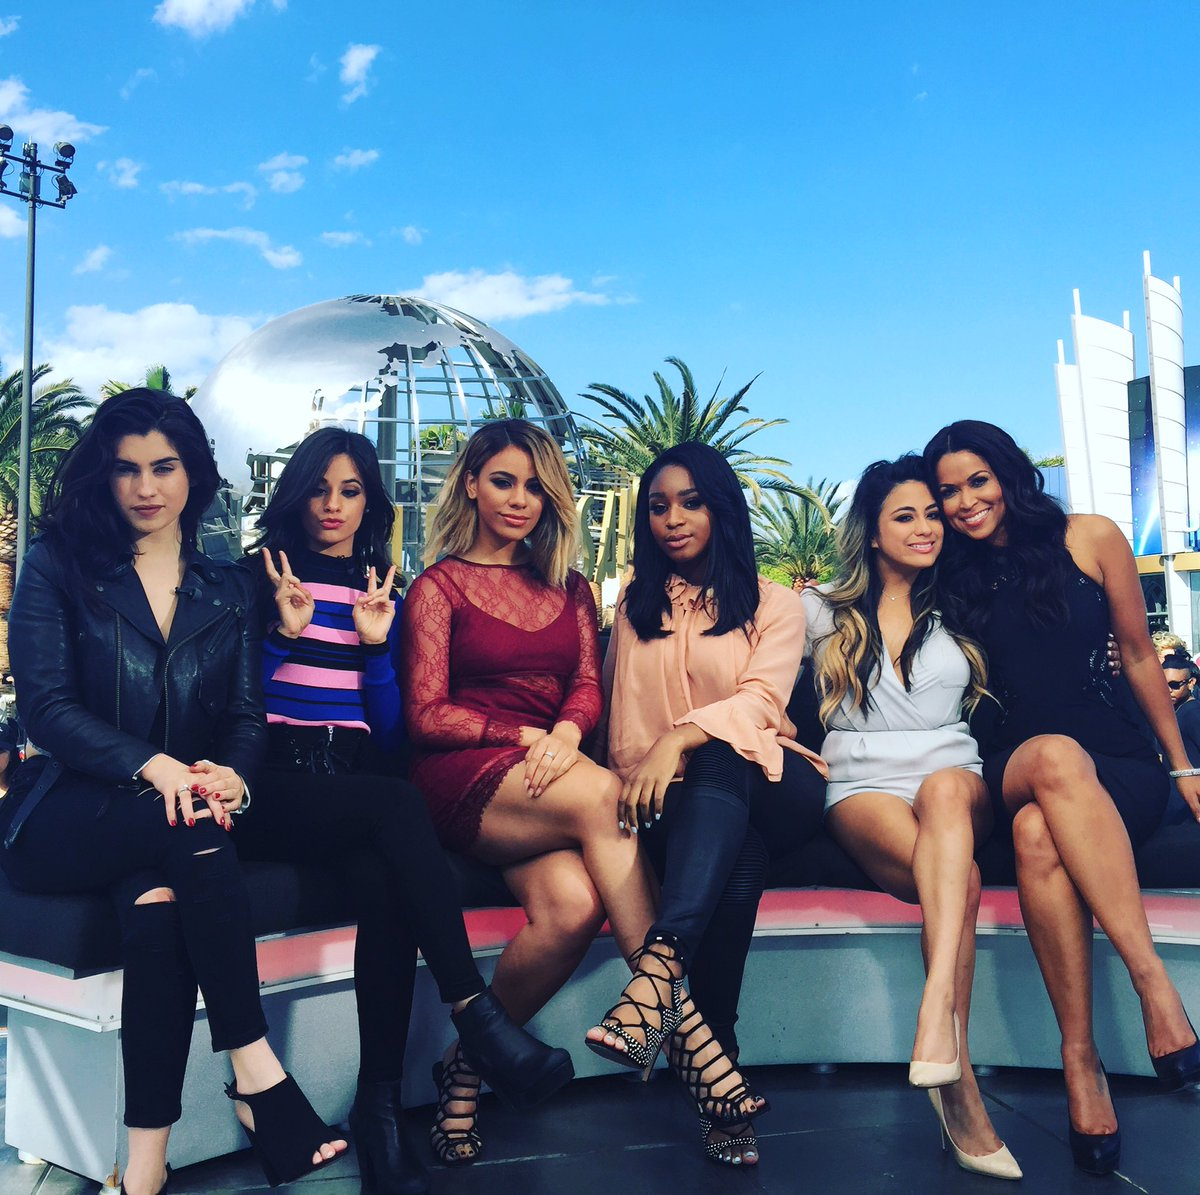 So much fun chatting with the lovely ladies of @FifthHarmony! #FifthHarmony #UniversalExtra https://t.co/IxTH9mYiUj